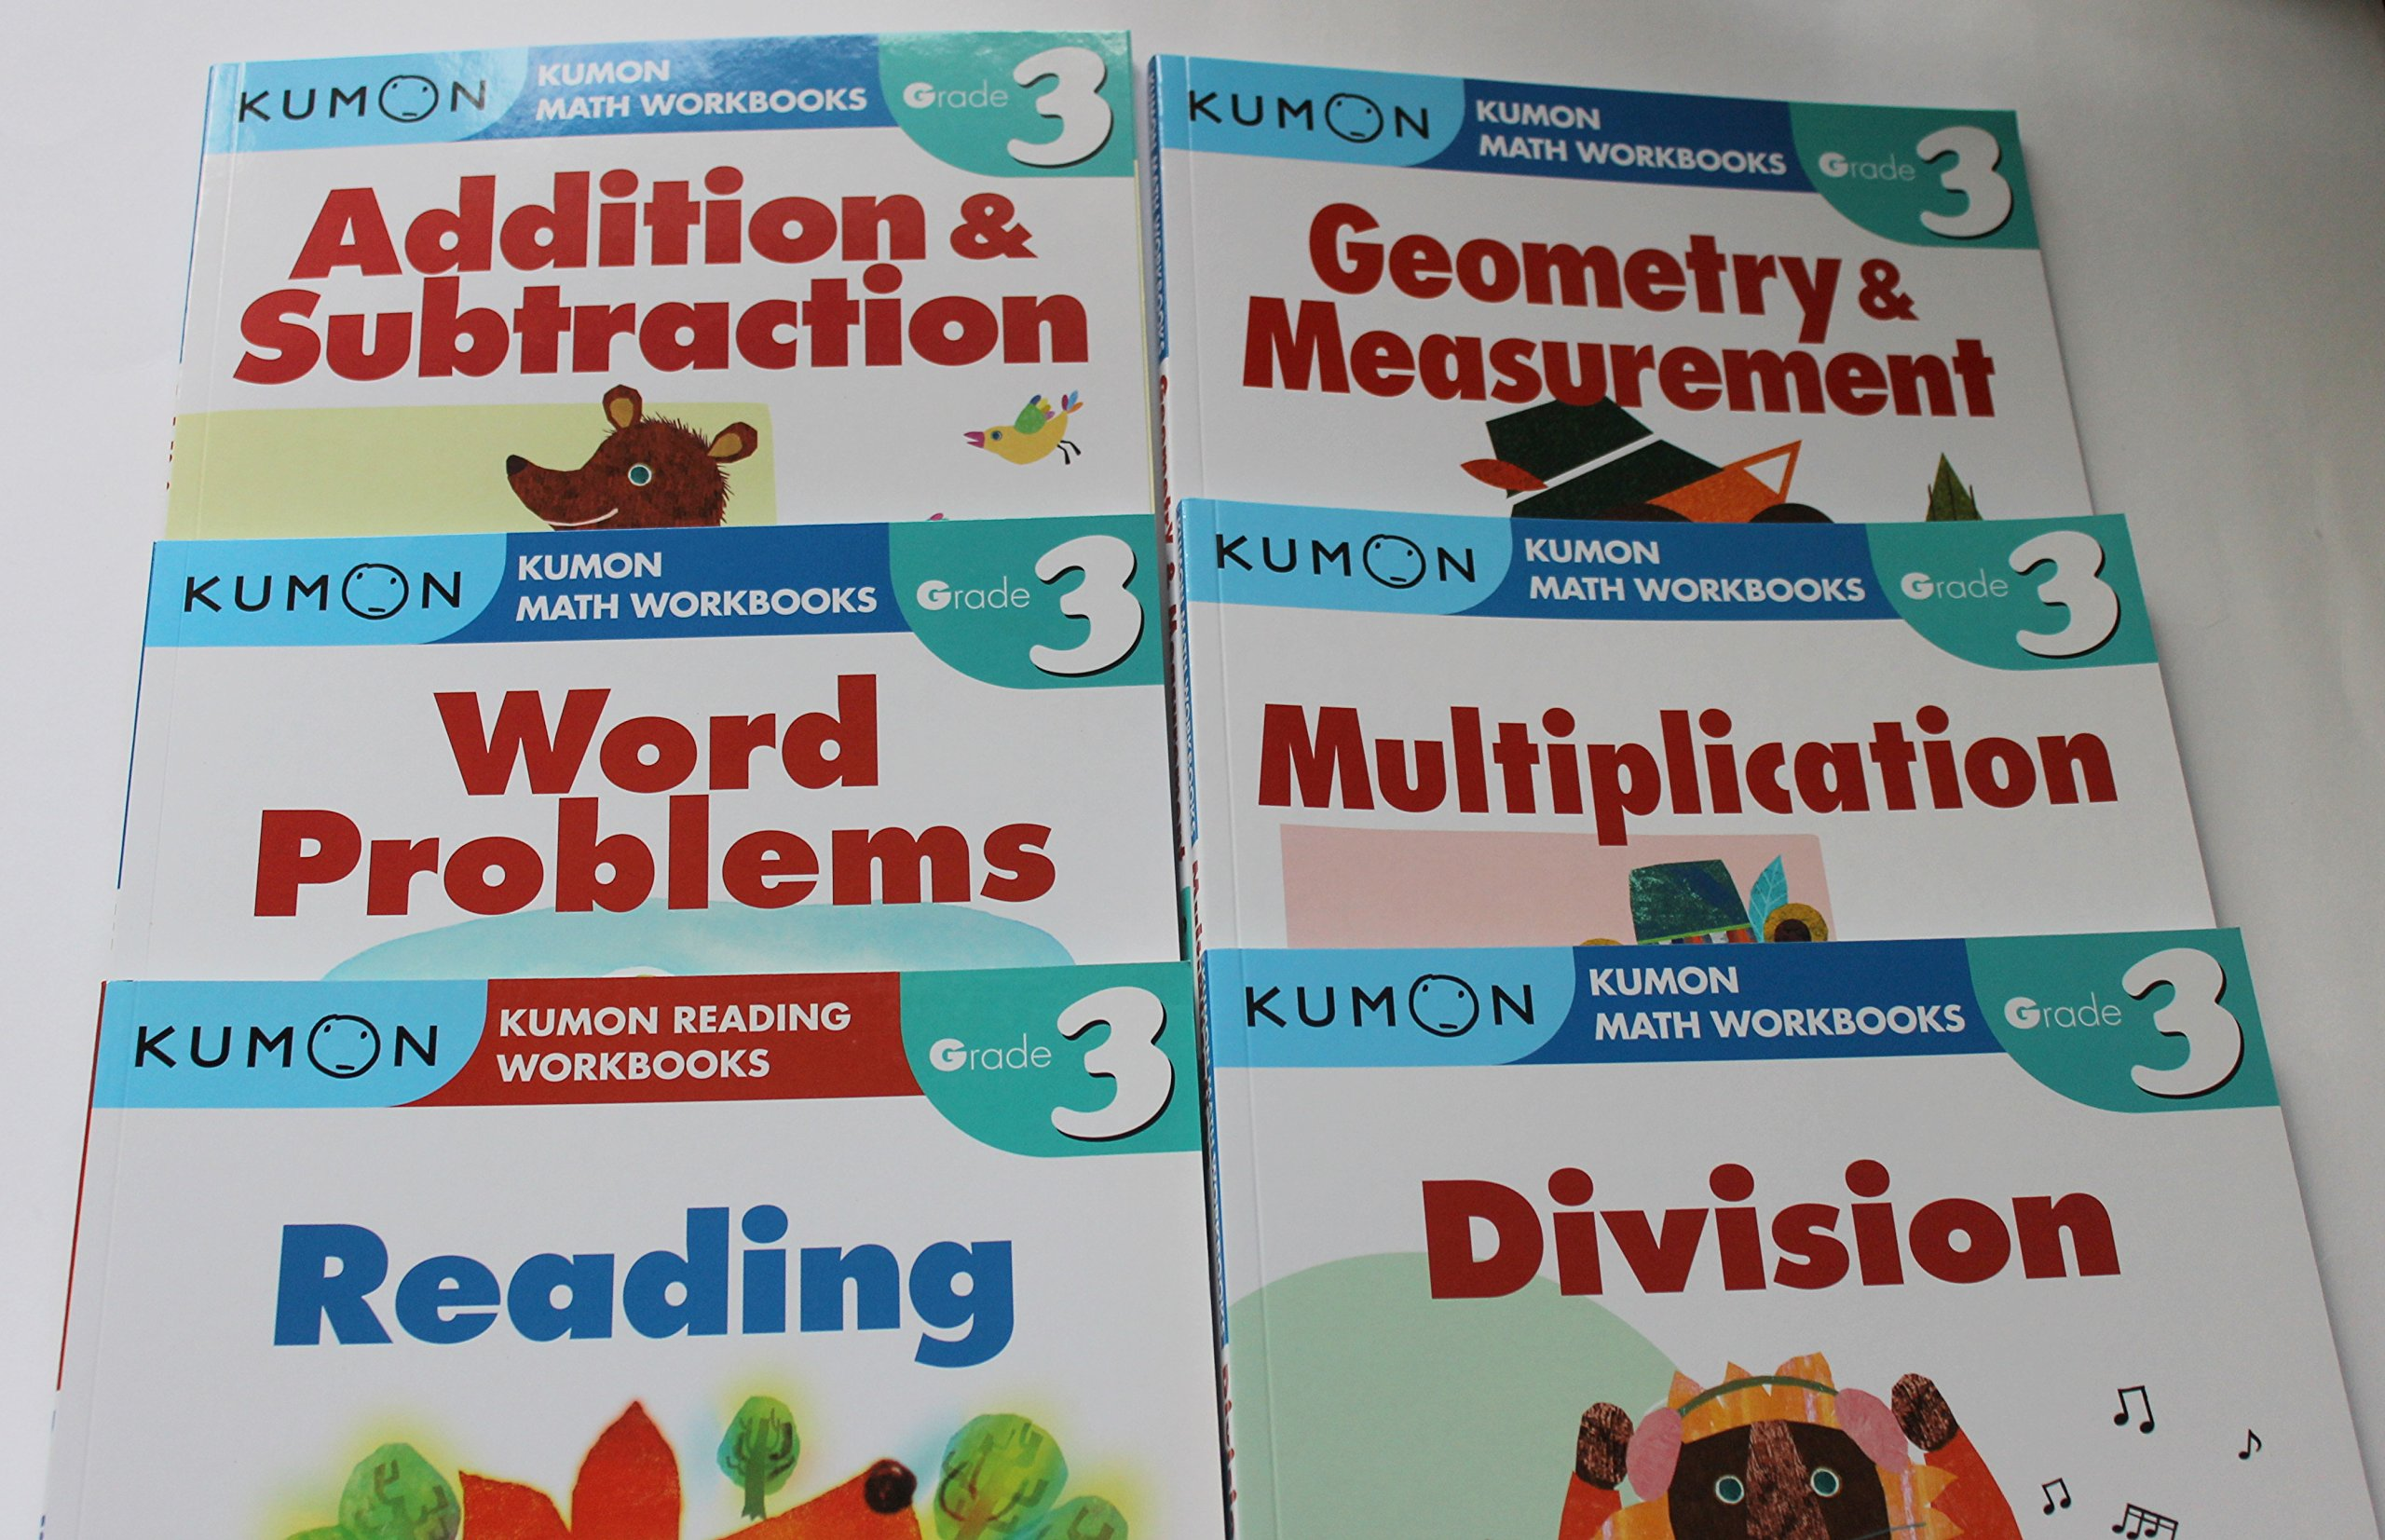 Kumon Grade 6 Math workbooks (3 books) - Fraction, Geometry ...